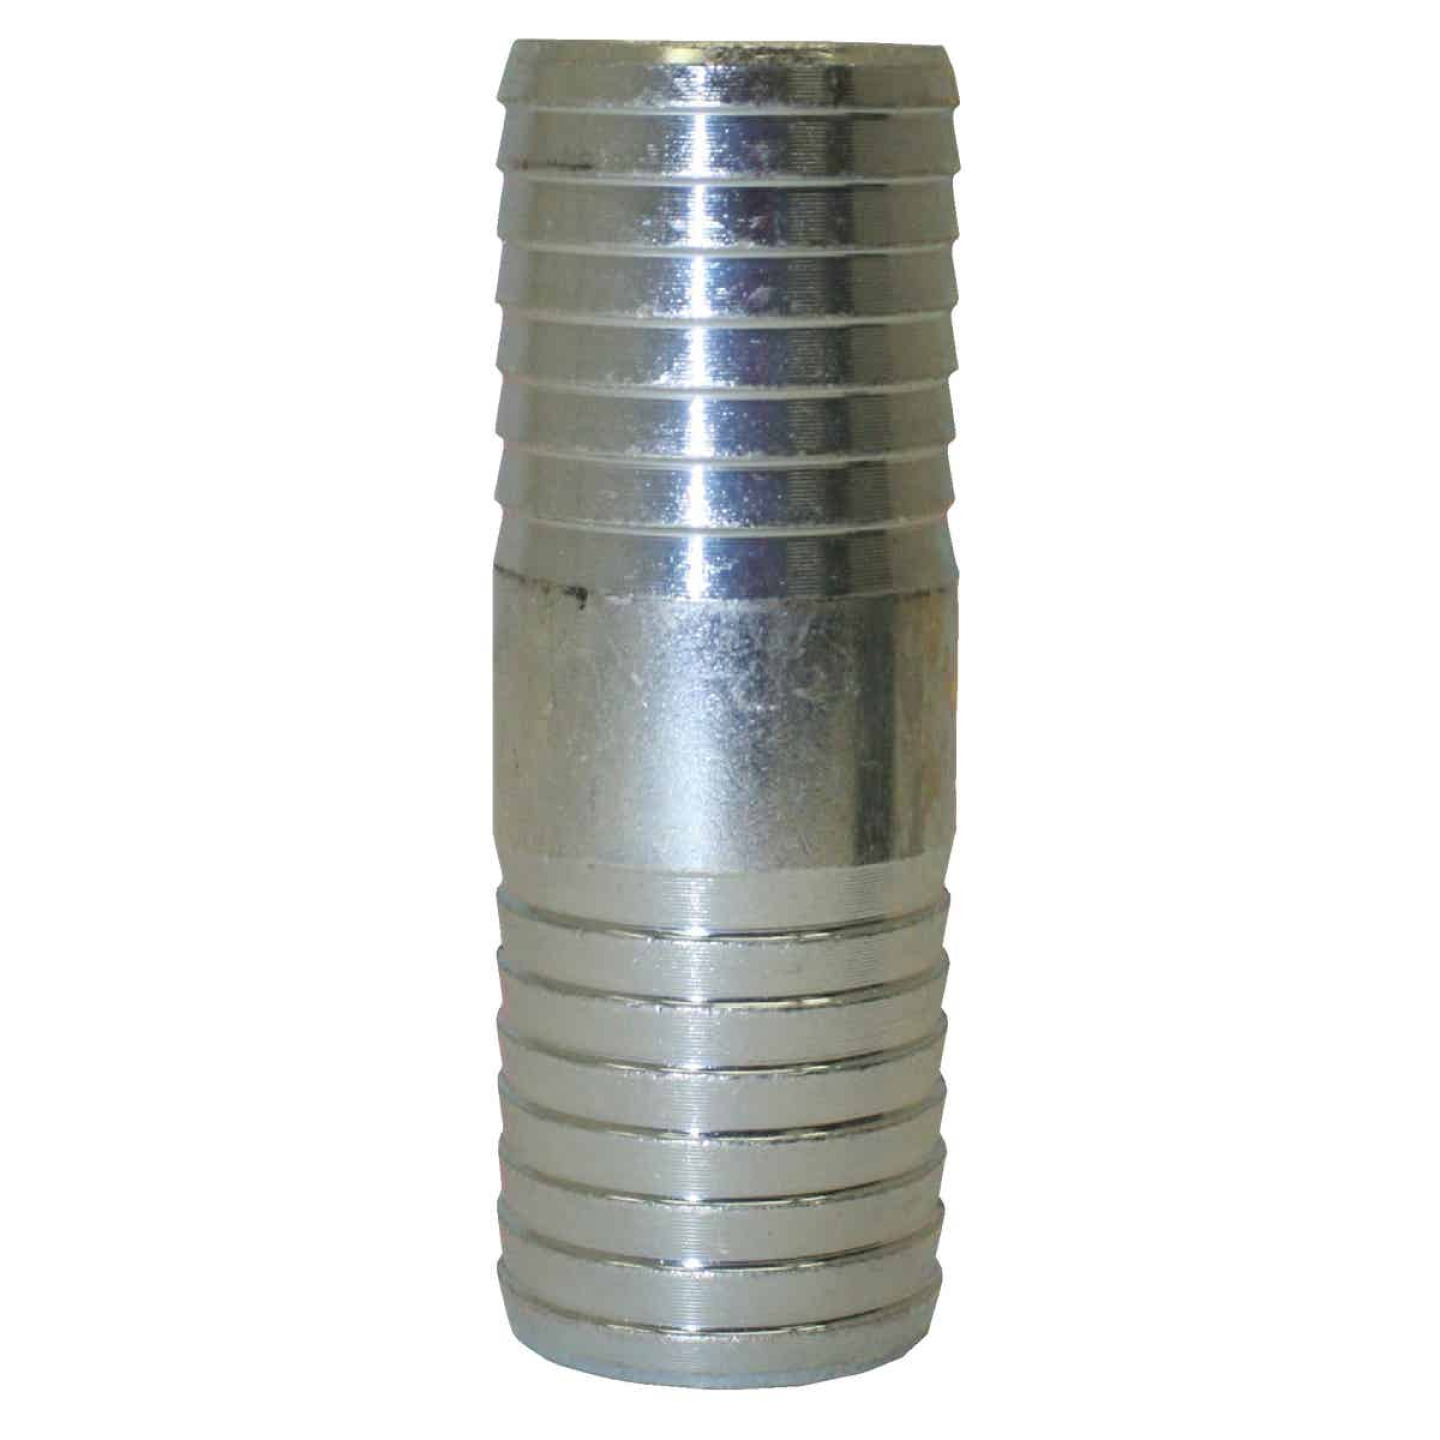 Merrill 1-1/4 In. x 1-1/4 In. Barb Insert Galvanized Coupling Image 1